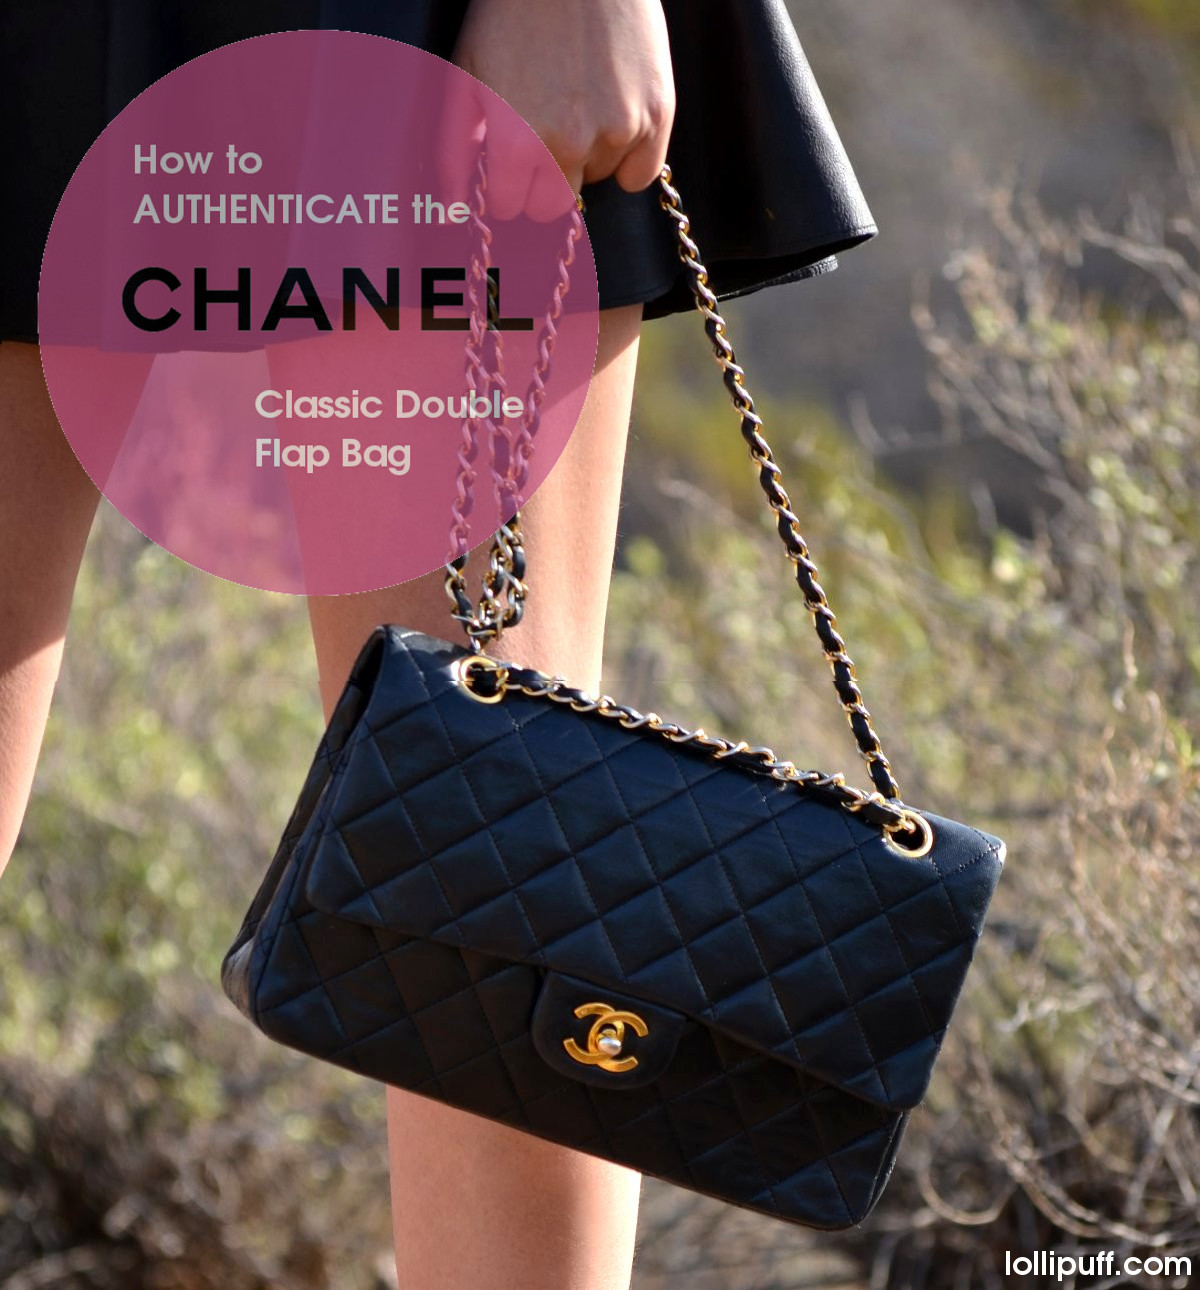 944f35d1893a Authentication Guide: Chanel 2.55 Bag Classic Double Flap | Lollipuff